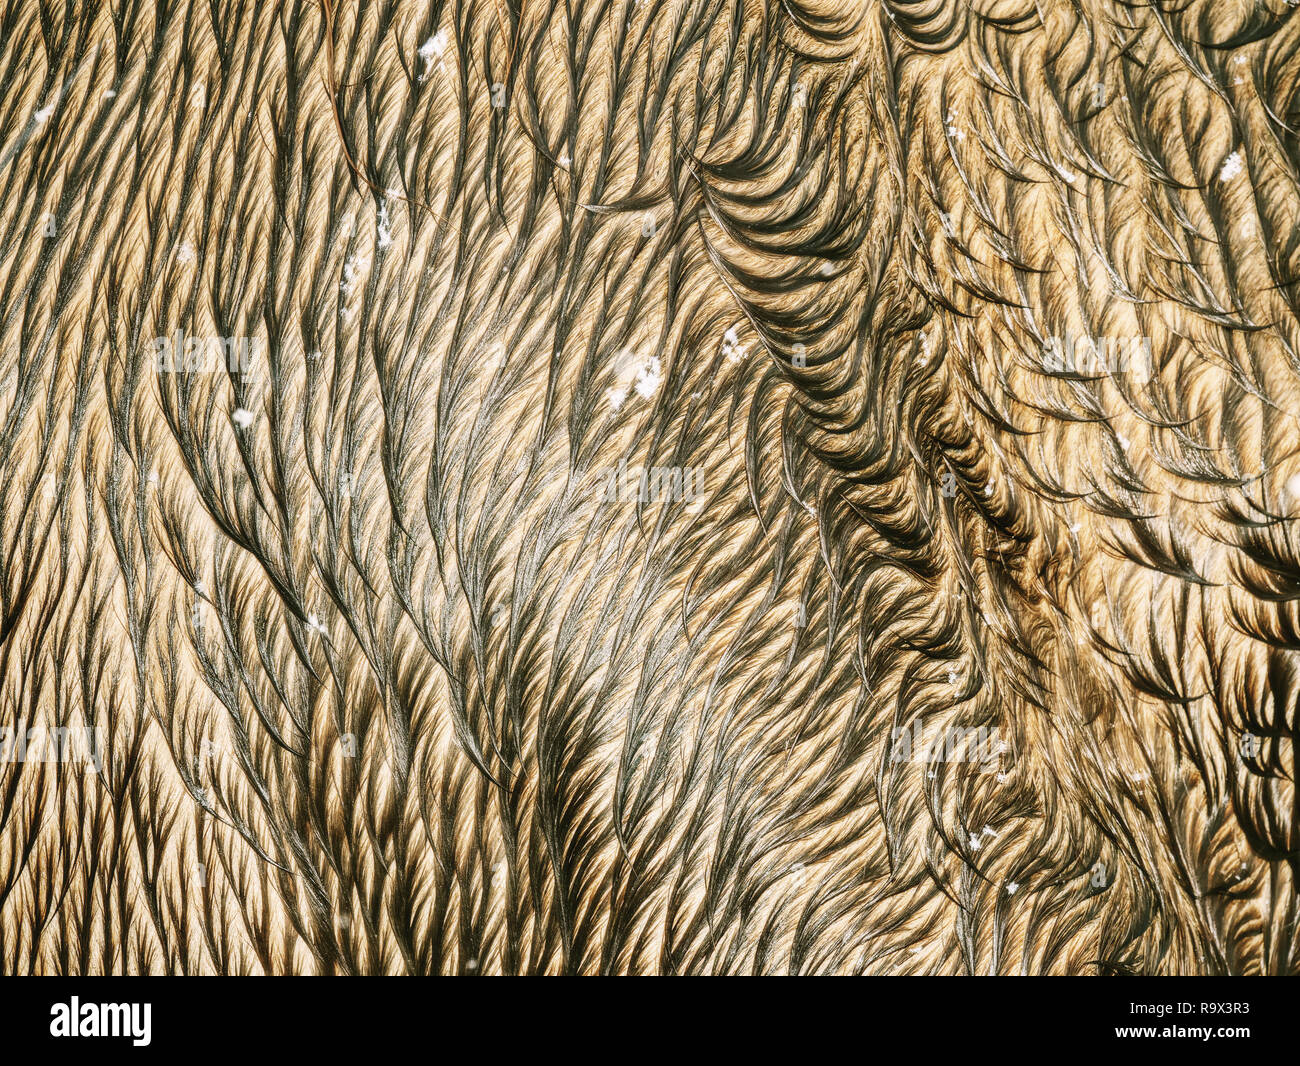 Natural horse fur. Animal hair in wet winter weather. Detailed hairy leather on horse back. - Stock Image